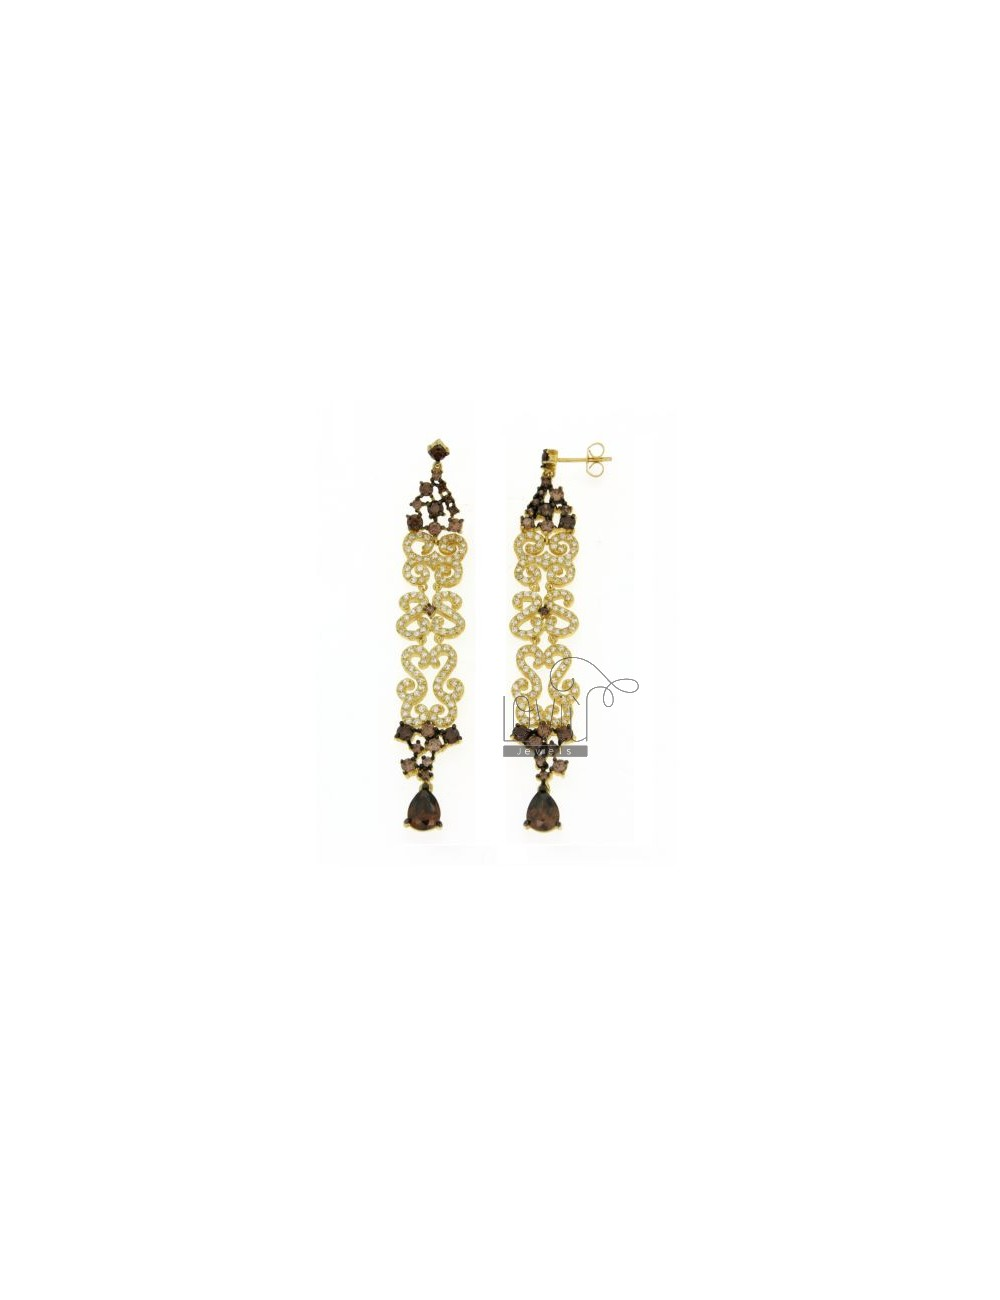 Doodle EARRINGS PENDANTS WITH ZIRCONIA WHITE AND BROWN IN GOLD PLATED AG TIT 925 ‰